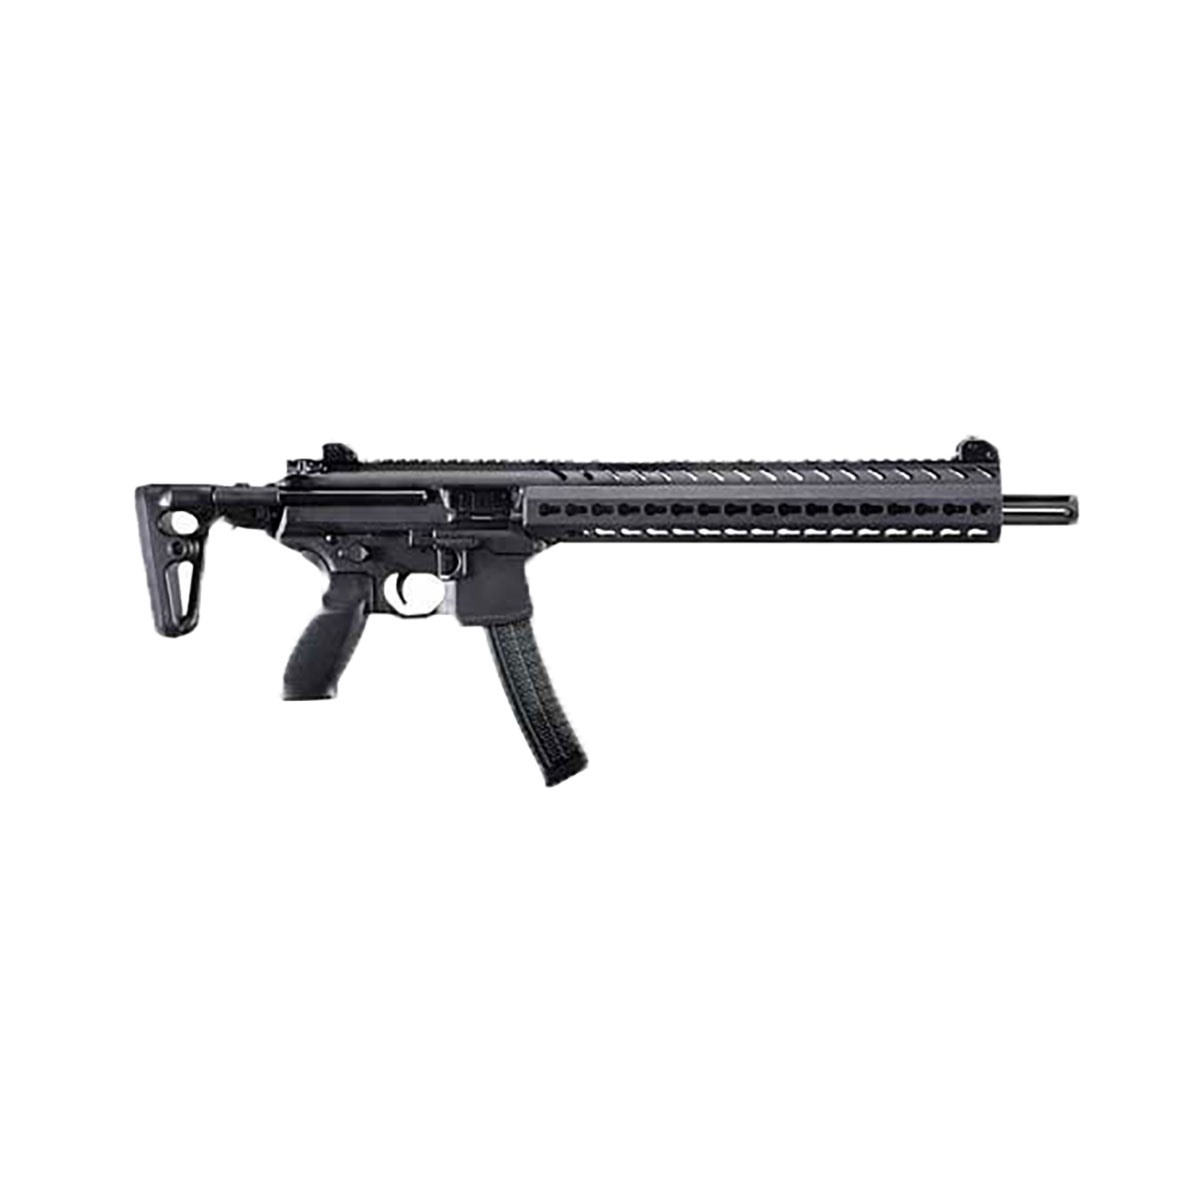 Sig Sauer Mpx Carbine 16in 9mm Black 30 1rd Brownells Remington 870 Trigger Assembly Diagram Http Wwwbrownellscom Back